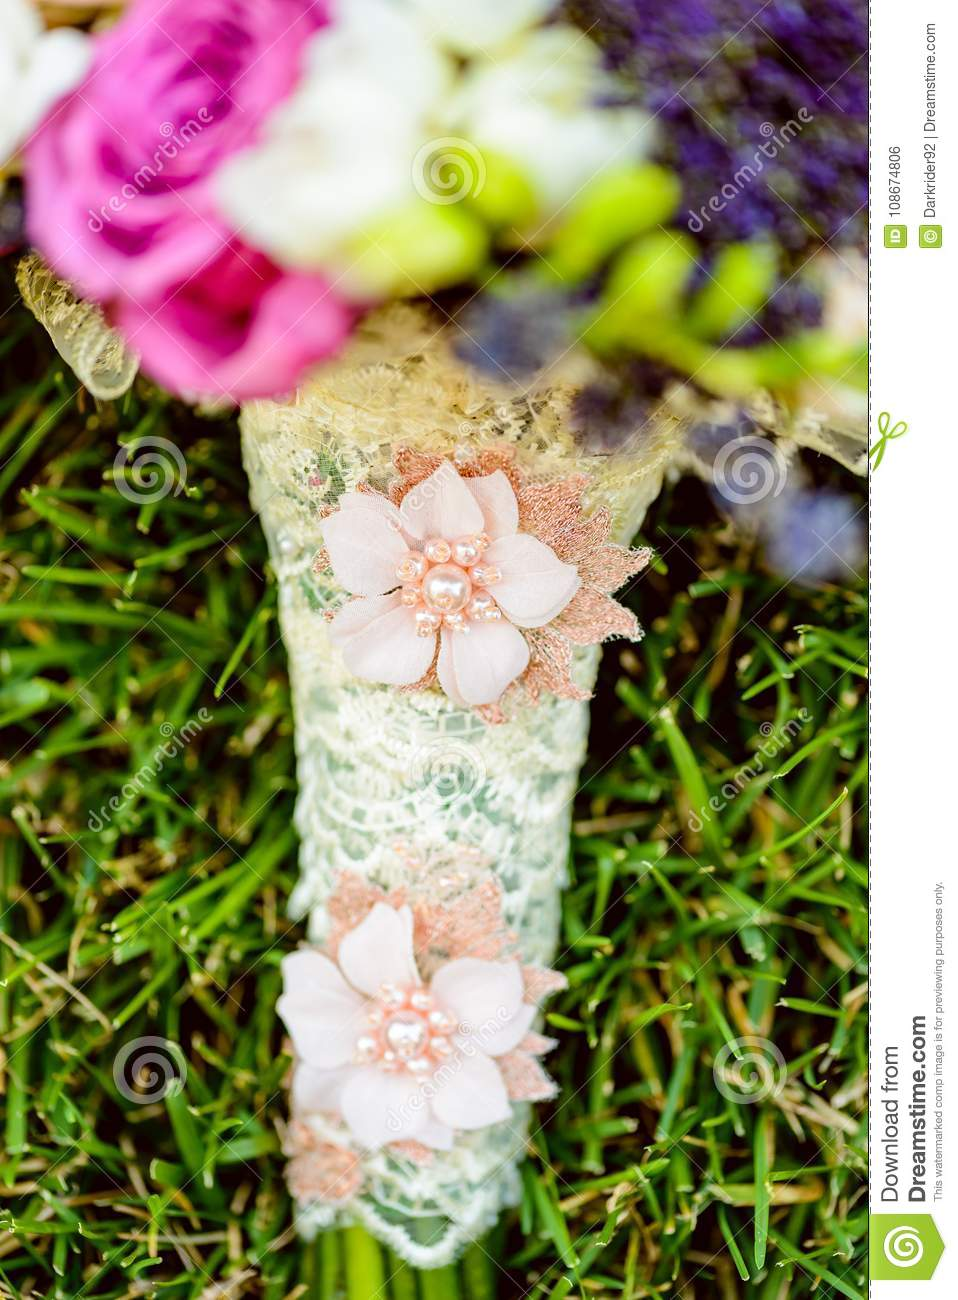 Flowers bouquet laying in grass stock photo image of fresh bouqet one flowers wedding bouquet laying in grass outside izmirmasajfo